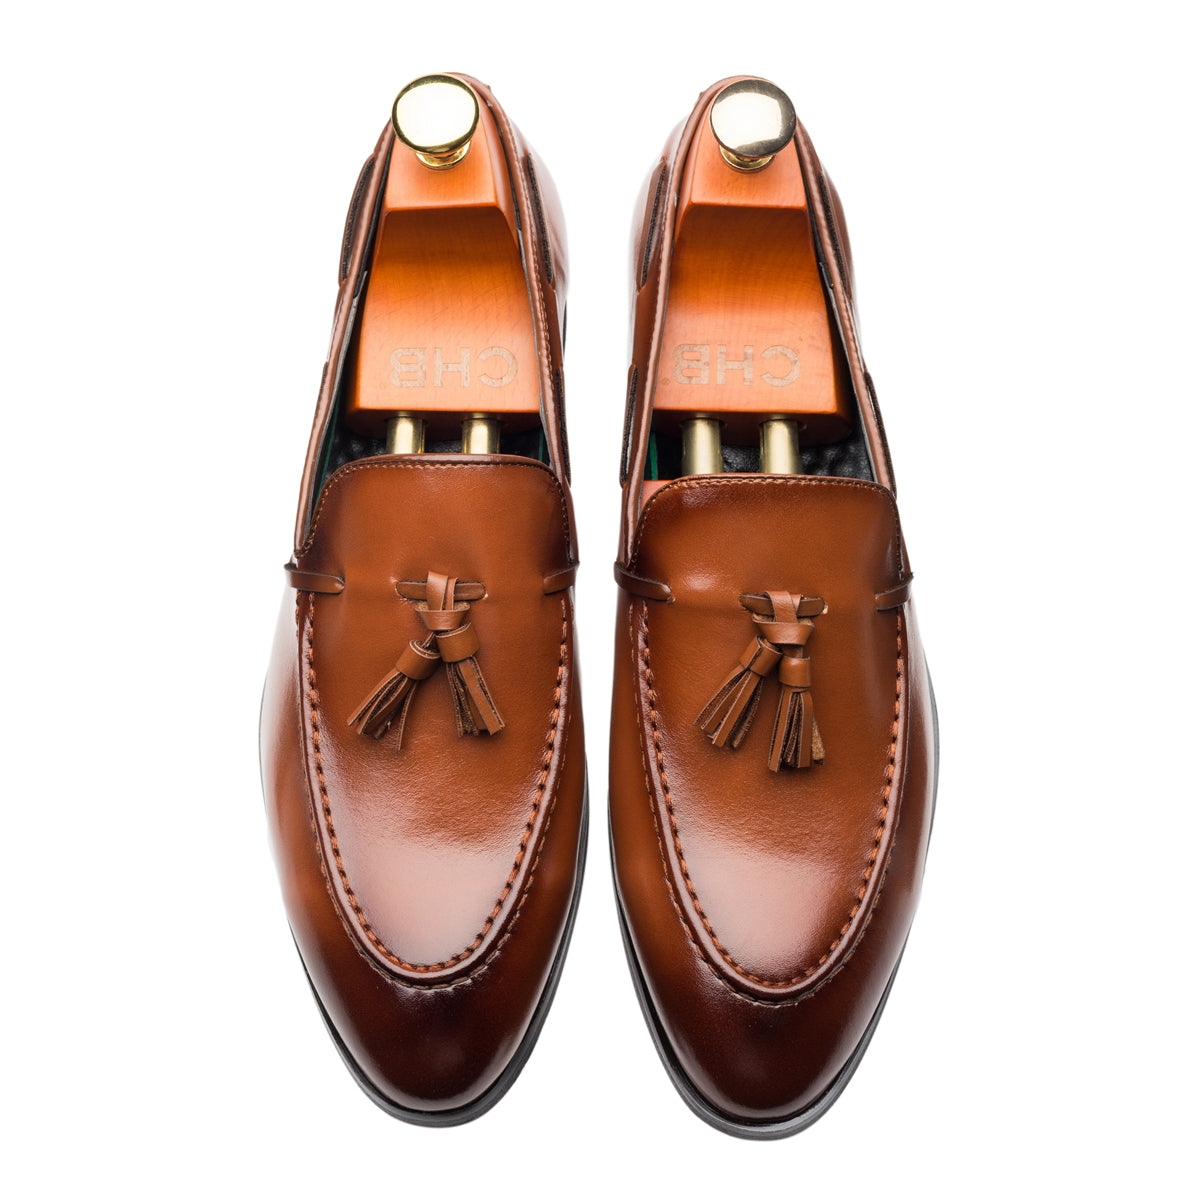 Breathable Tassels Slip On Pointed Toe Genuine Leather Shoes Loafers Brown